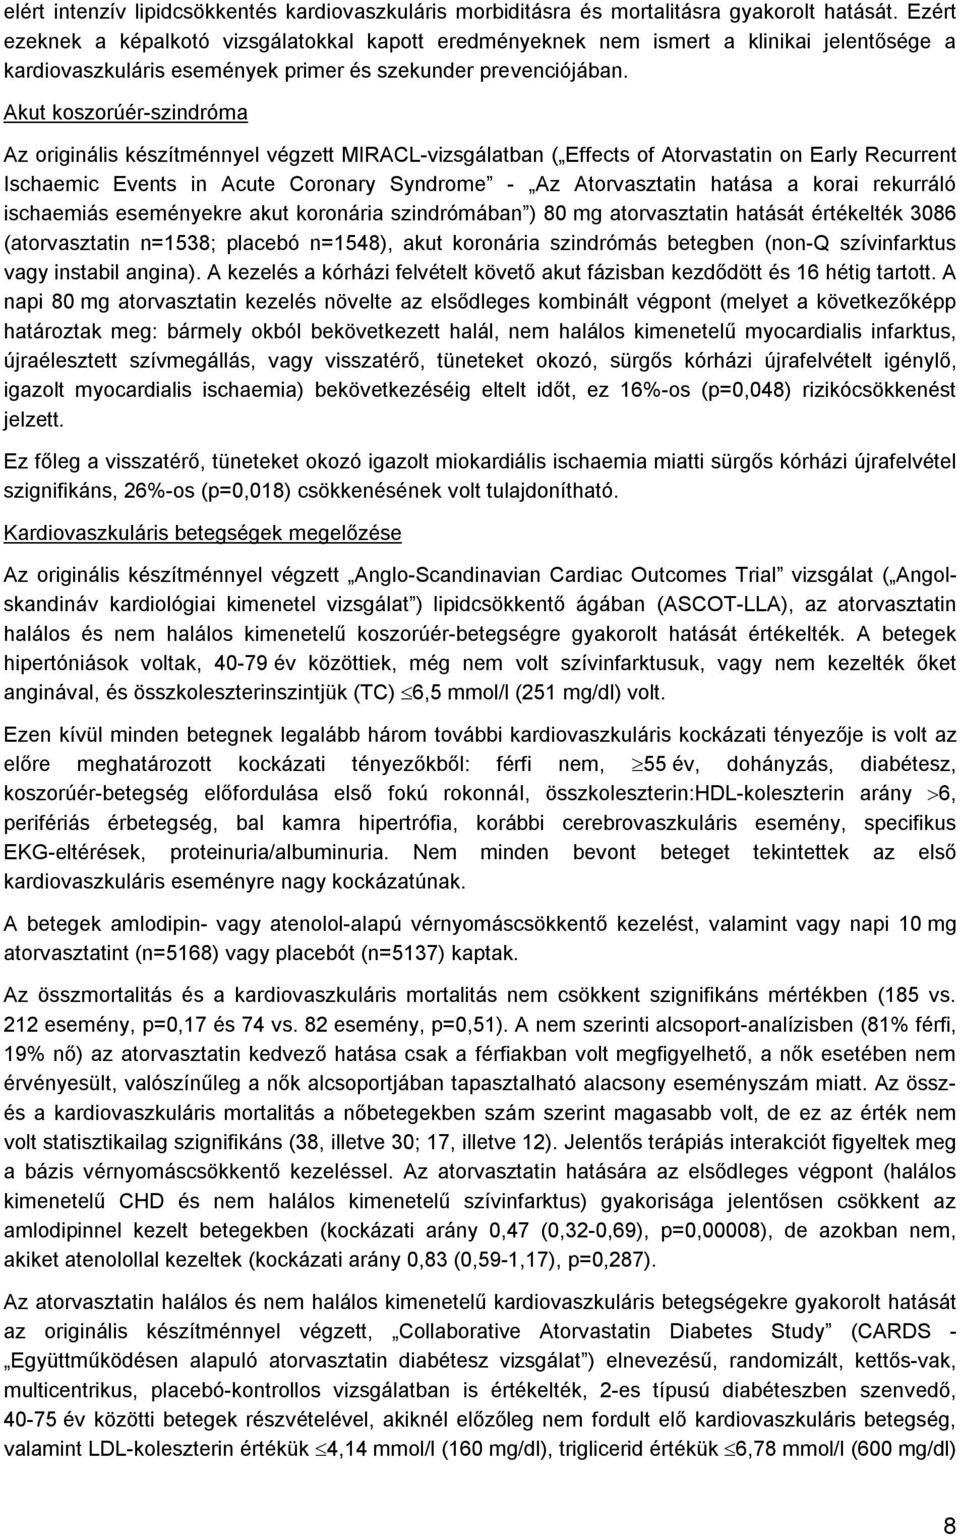 Akut koszorúér-szindróma Az originális készítménnyel végzett MIRACL-vizsgálatban ( Effects of Atorvastatin on Early Recurrent Ischaemic Events in Acute Coronary Syndrome - Az Atorvasztatin hatása a